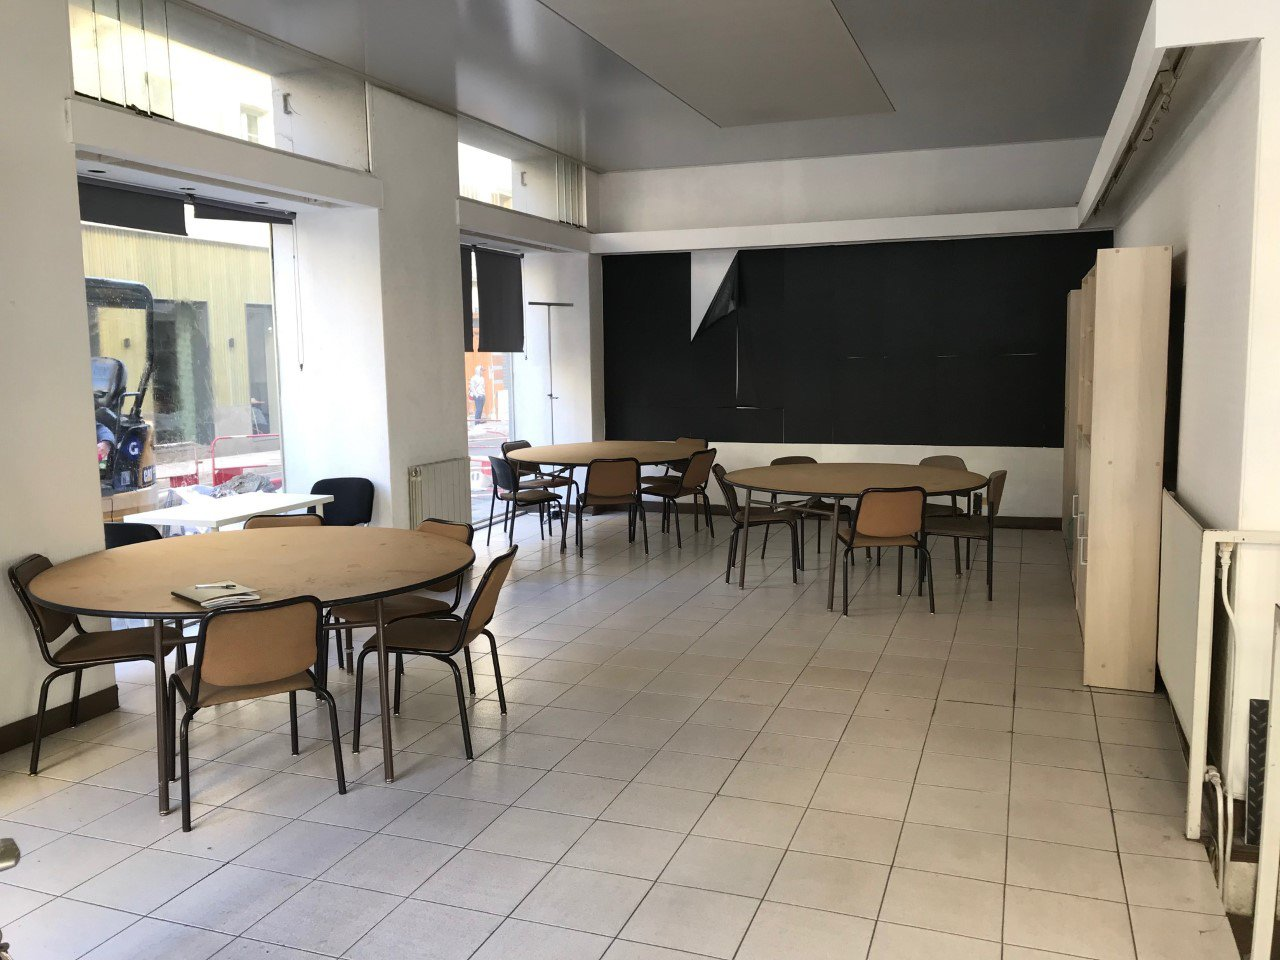 LOCATION PURE - NICE CENTRE - 200 M²